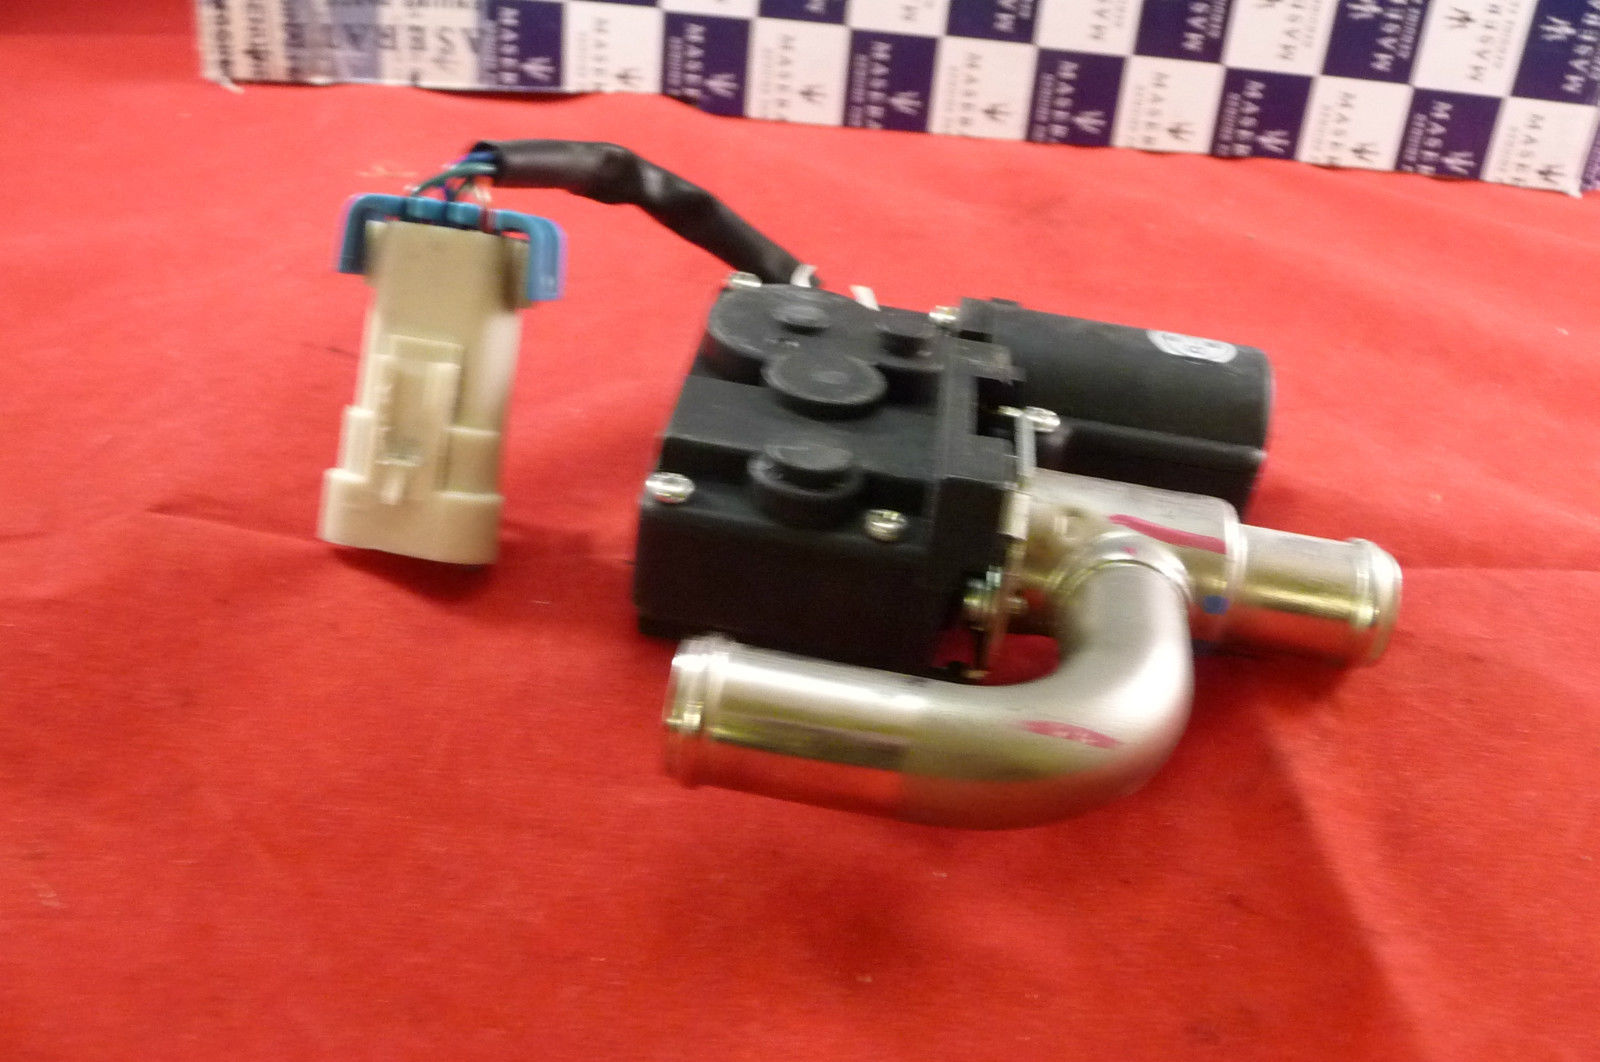 Ferrari Maserati - Right Side RH TGK VALVE 67635900 - Used Auto Parts Store | LA Global Parts